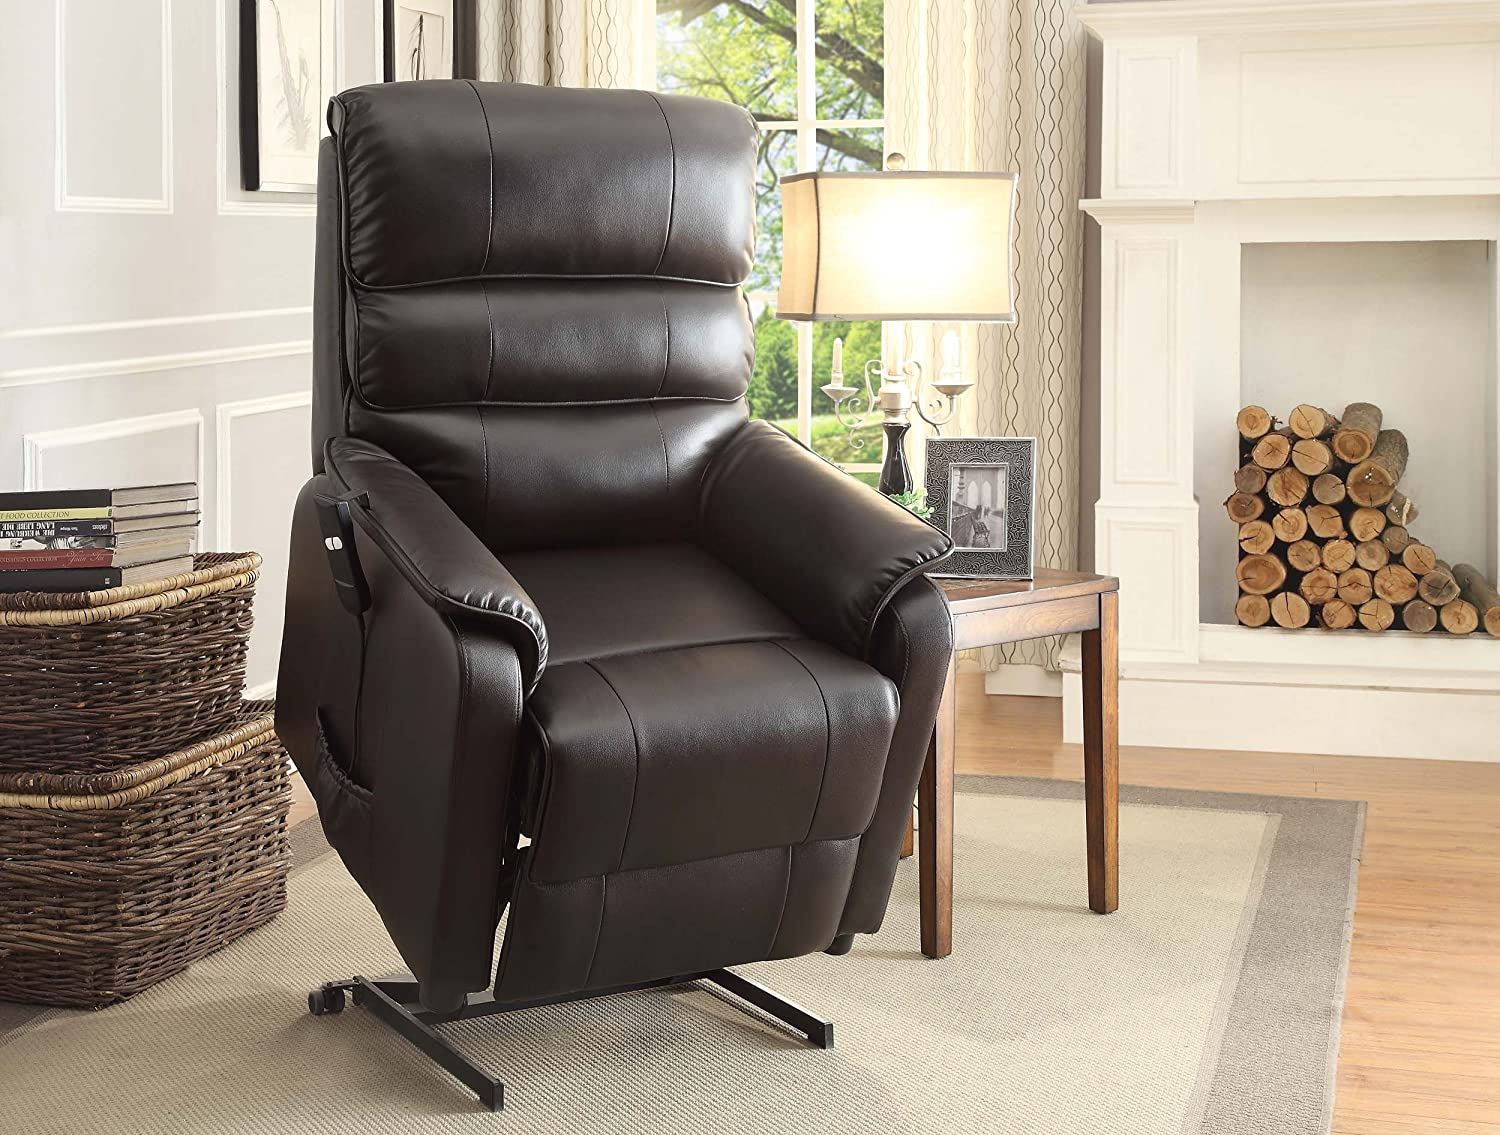 Amazon.com Homelegance Kellen Power Lift Bonded Leather Recliner Dark Brown Kitchen u0026 Dining & Amazon.com: Homelegance Kellen Power Lift Bonded Leather Recliner ... islam-shia.org